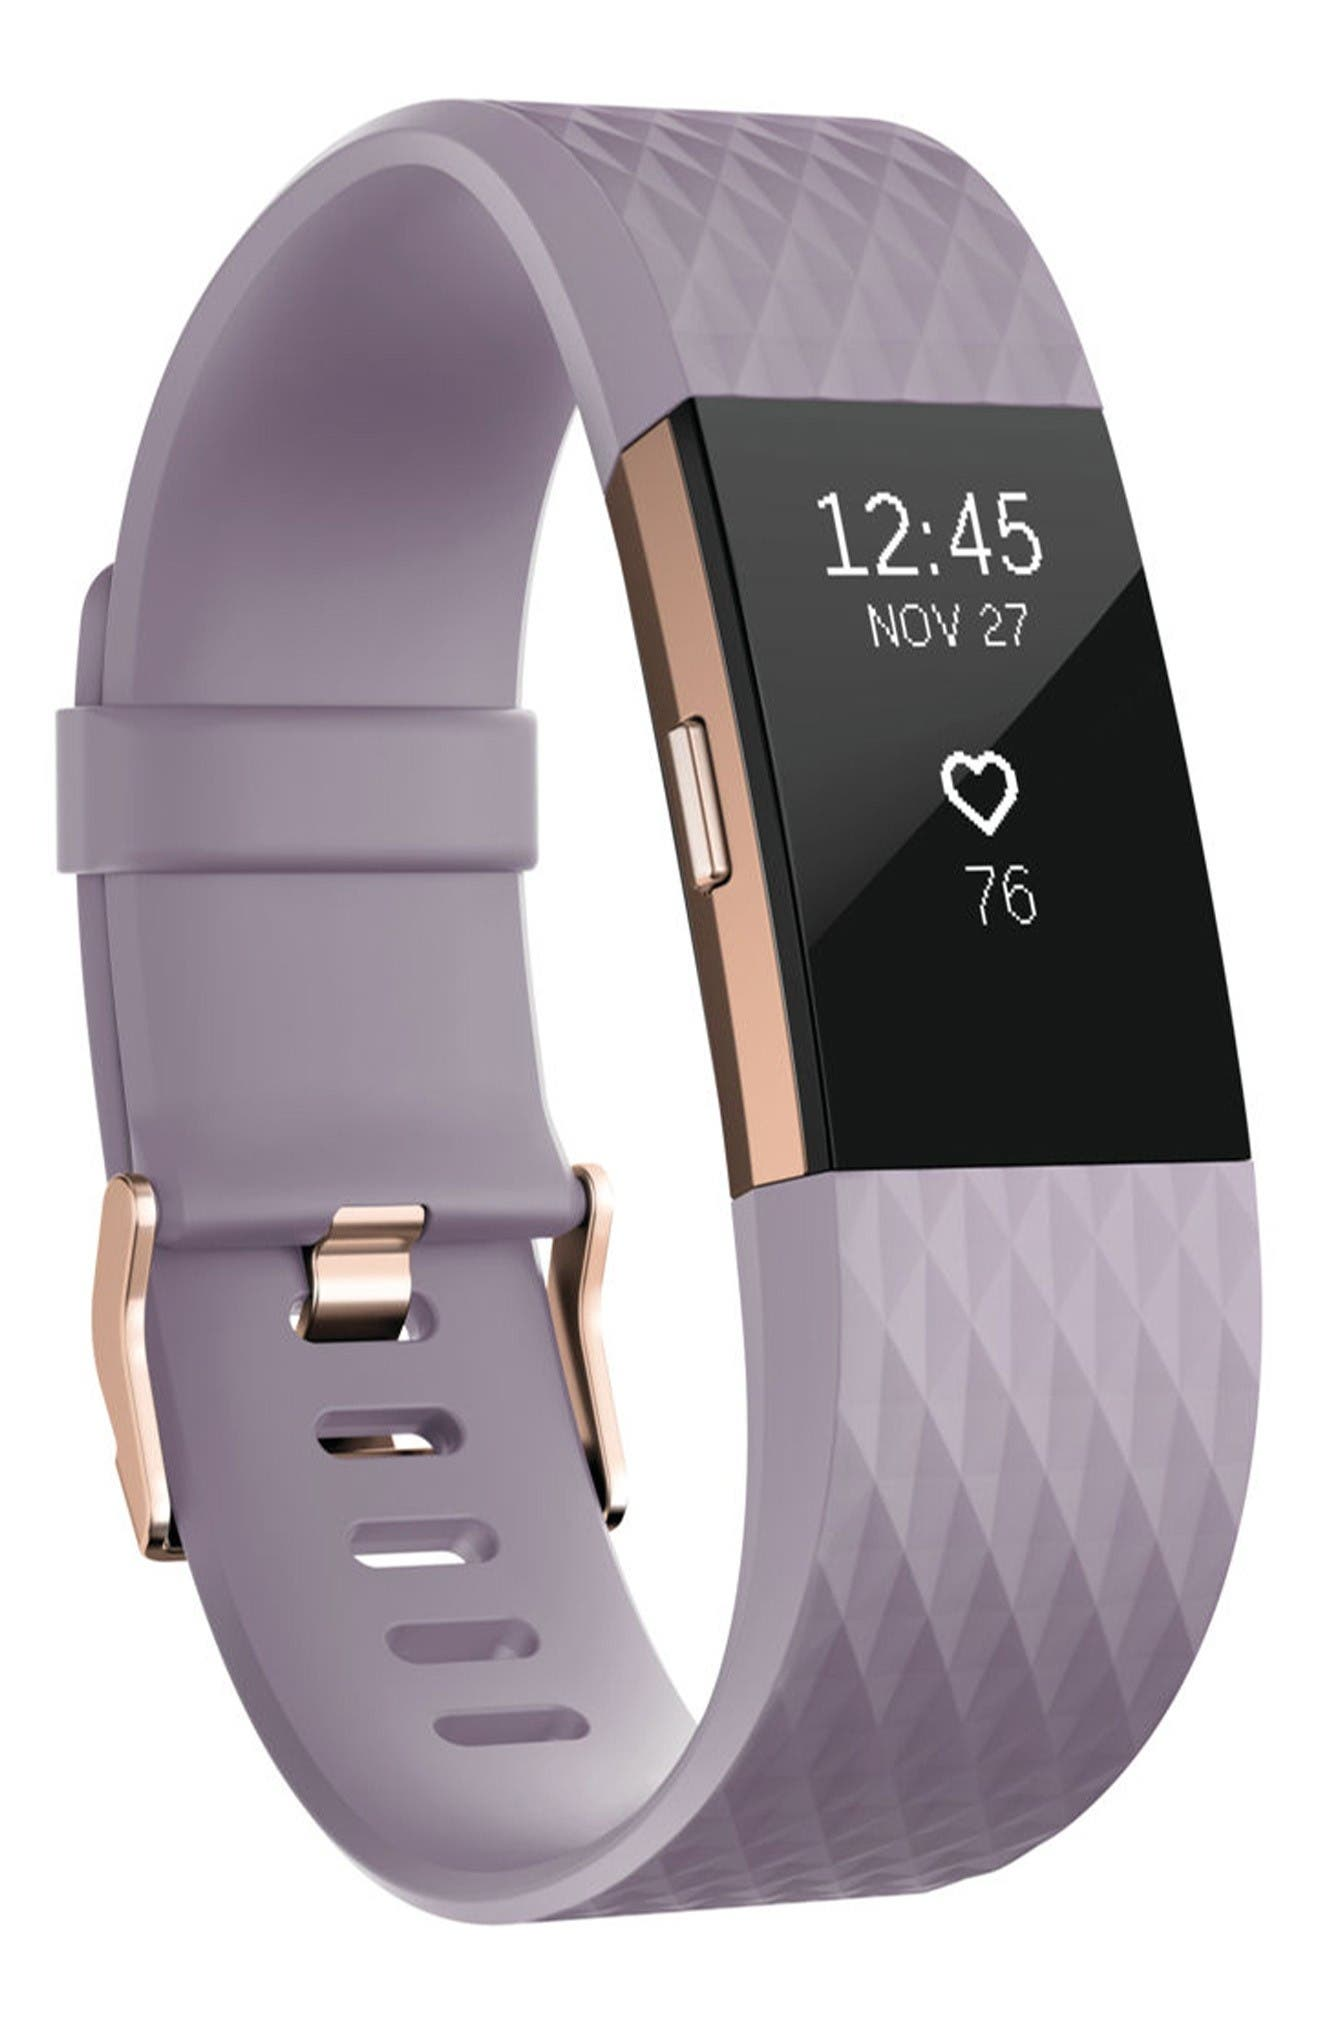 Alternate Image 1 Selected - Fitbit Charge 2 Special Edition Wireless Activity & Heart Rate Tracker